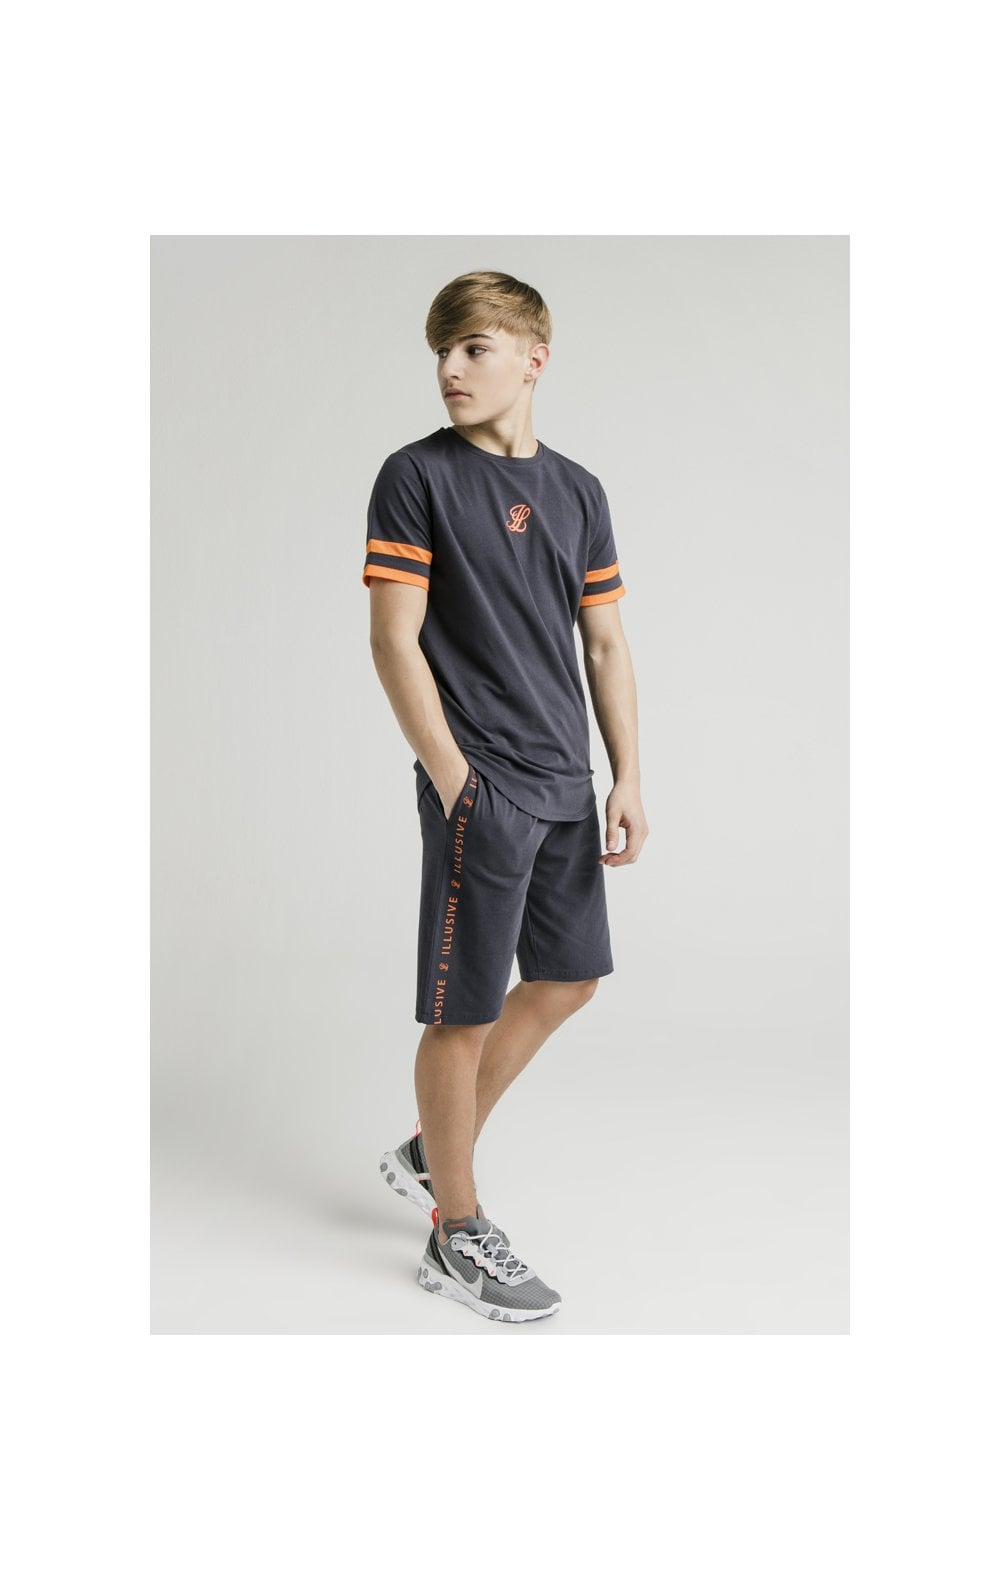 Load image into Gallery viewer, Illusive London Jersey Shorts – Grey & Orange (1)